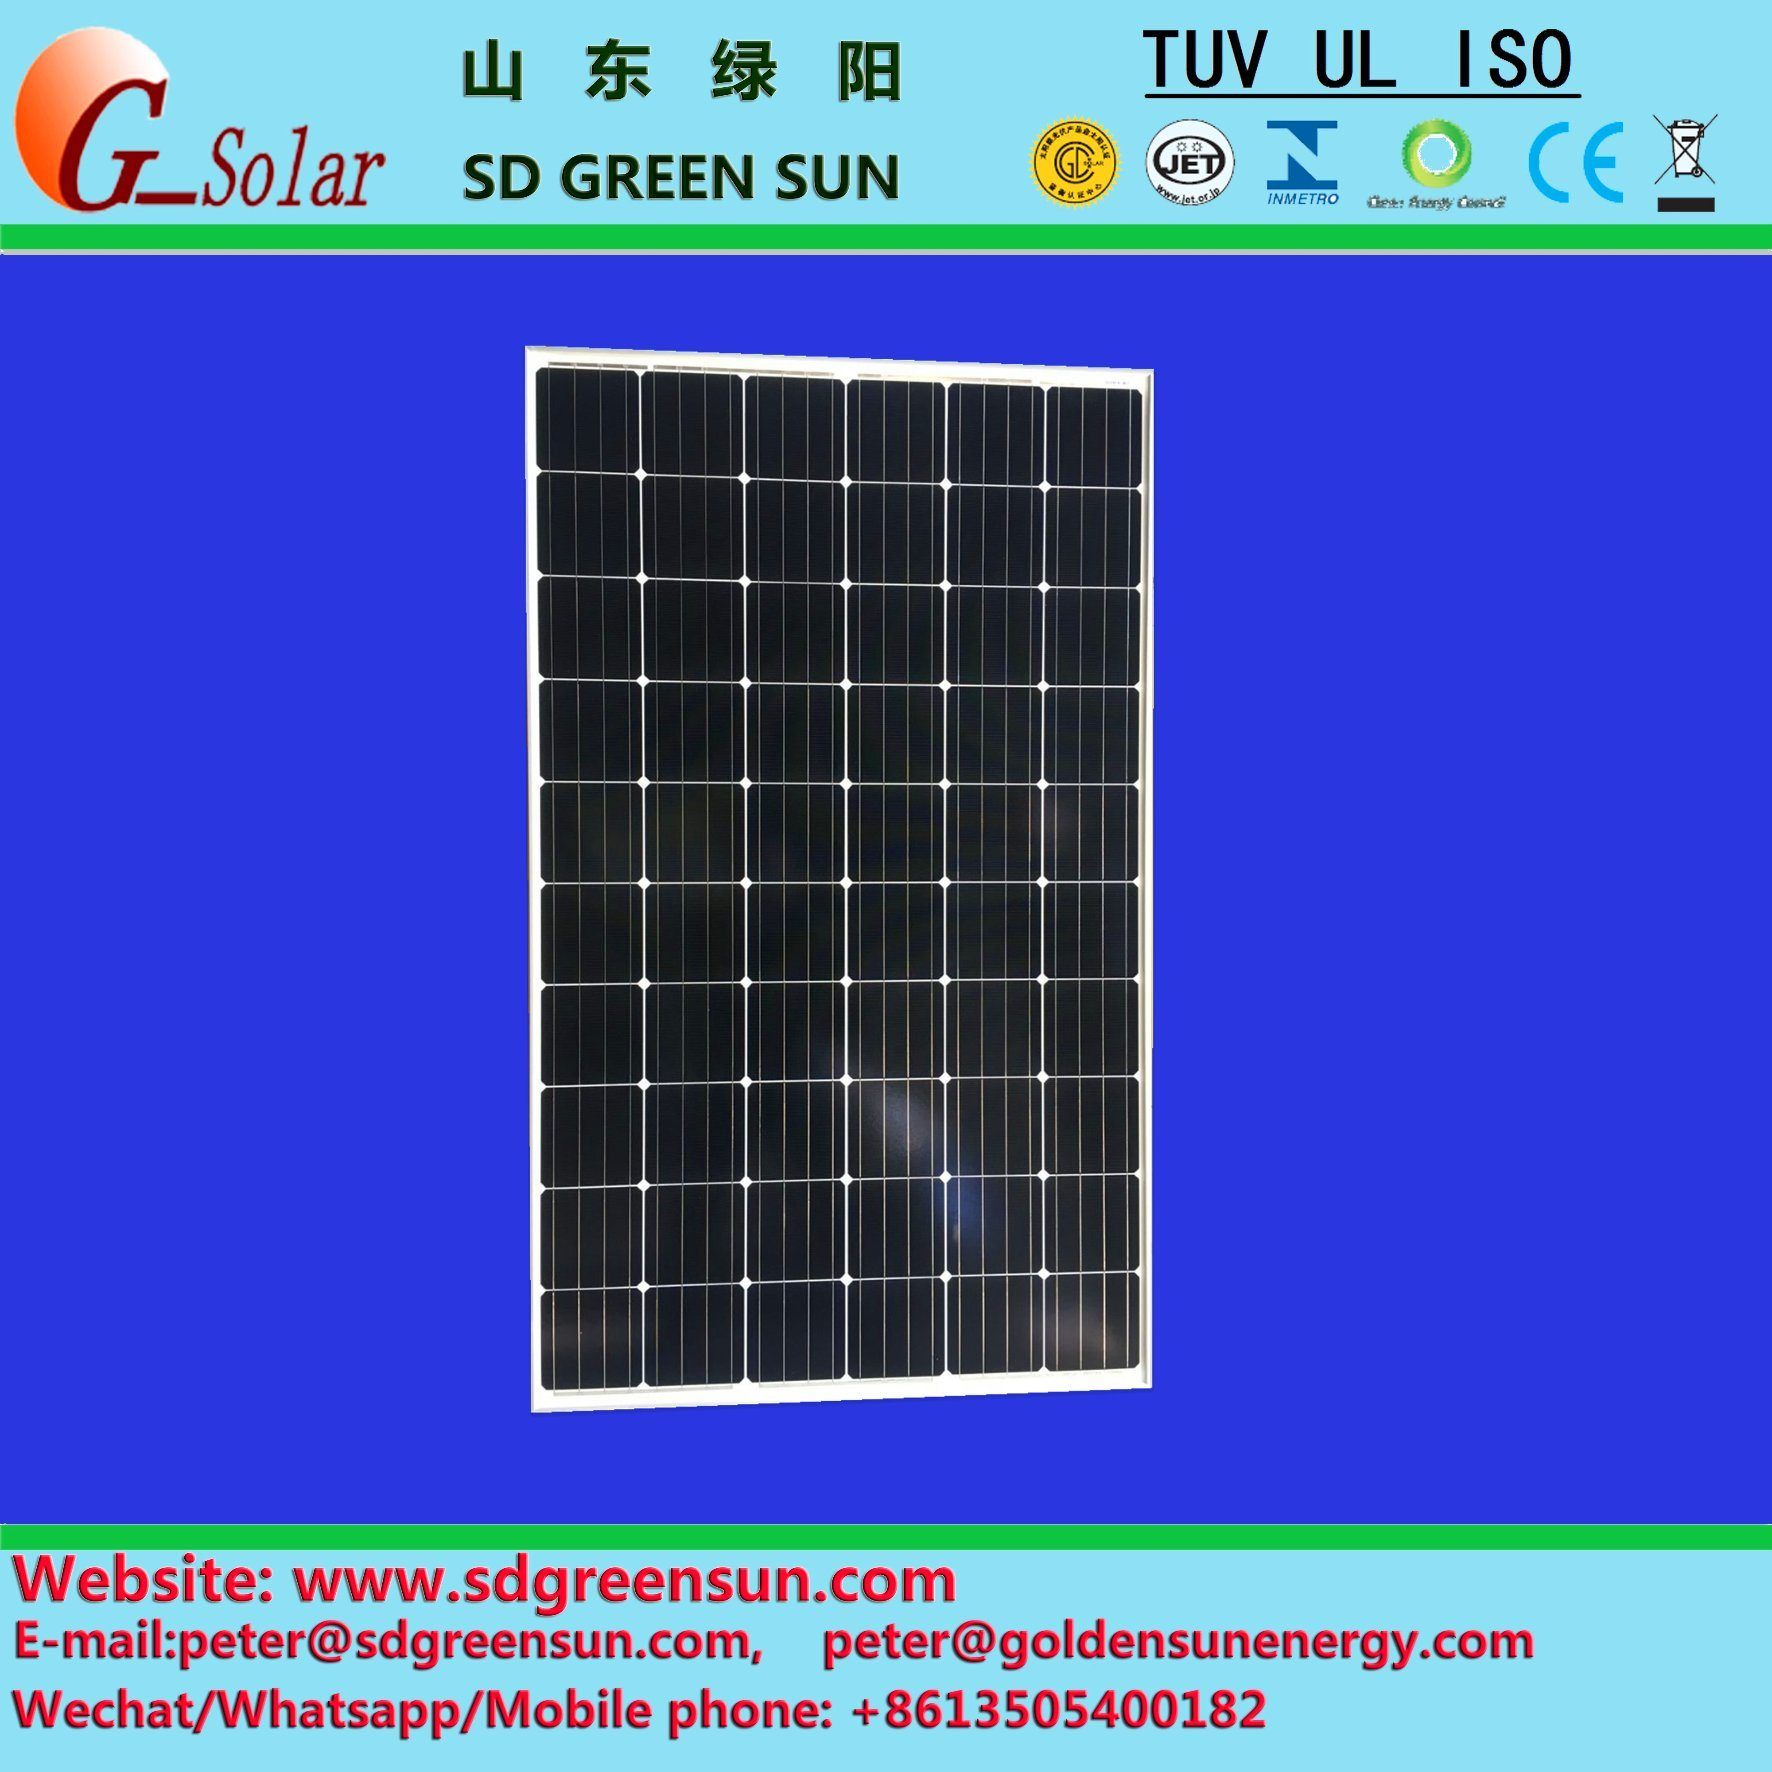 [Hot Item] 30V Solar Light Panel (240W-260W) with TUV/UL/Ce Certification